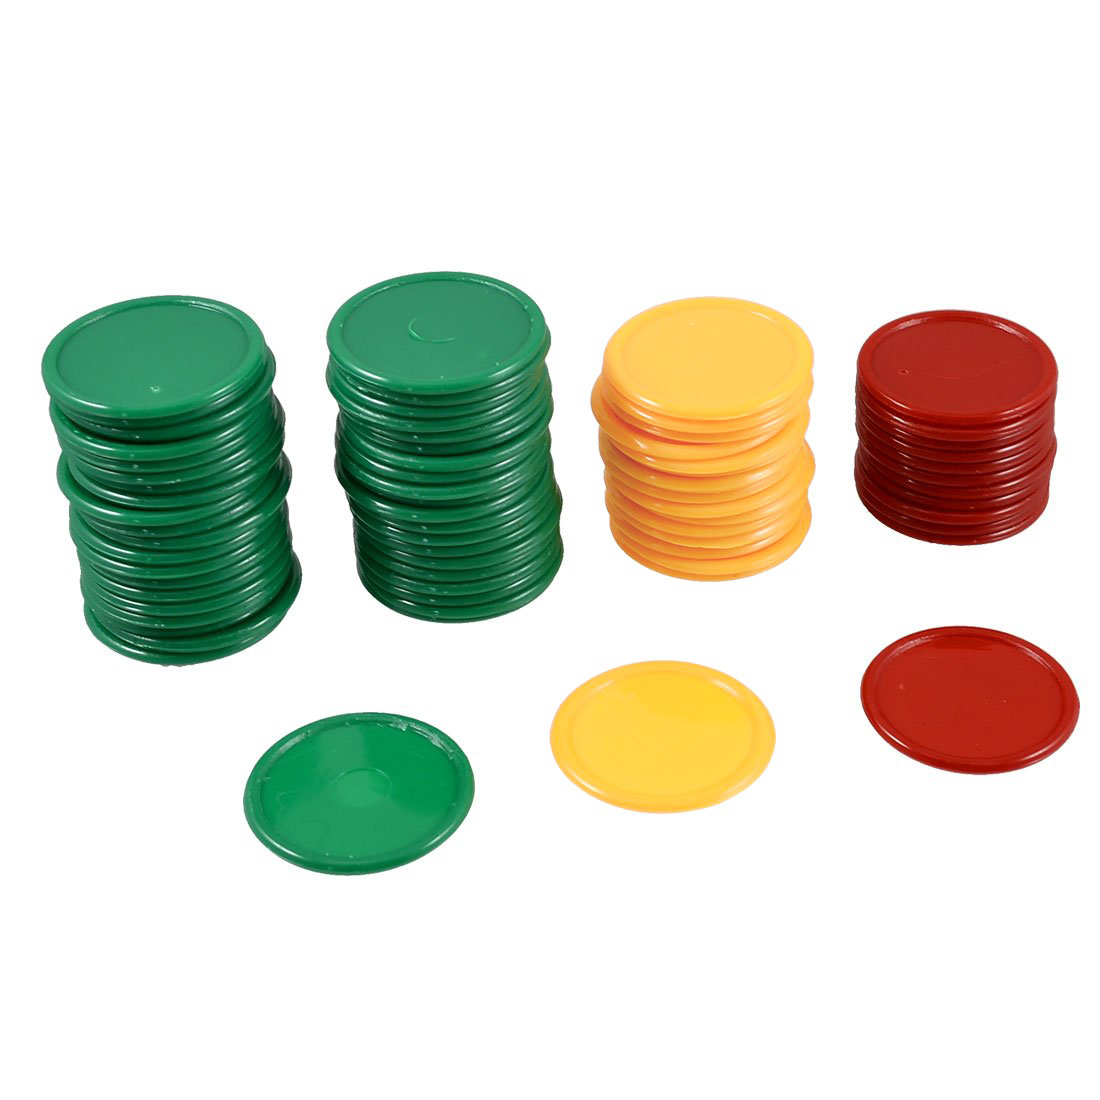 sews-red-yellow-green-round-shaped-mini-font-b-poker-b-font-chips-lucky-game-props-69-pcs